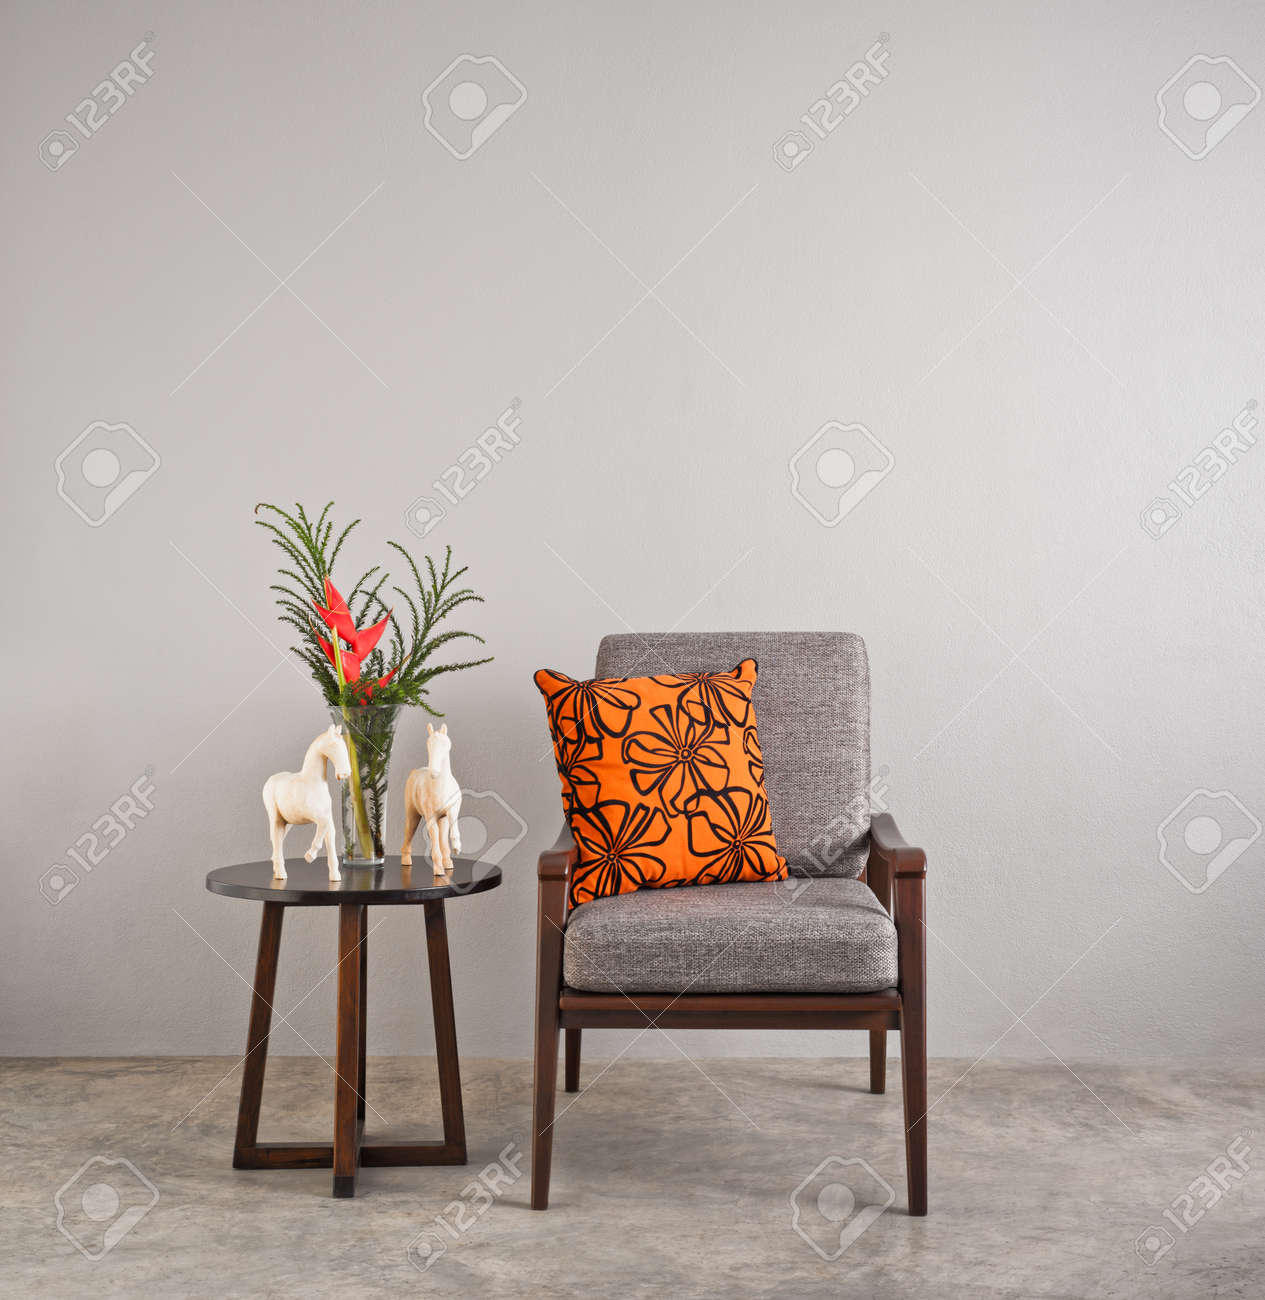 Grey Upholstered Chair In Living Room With Flowers Stock Photo ...